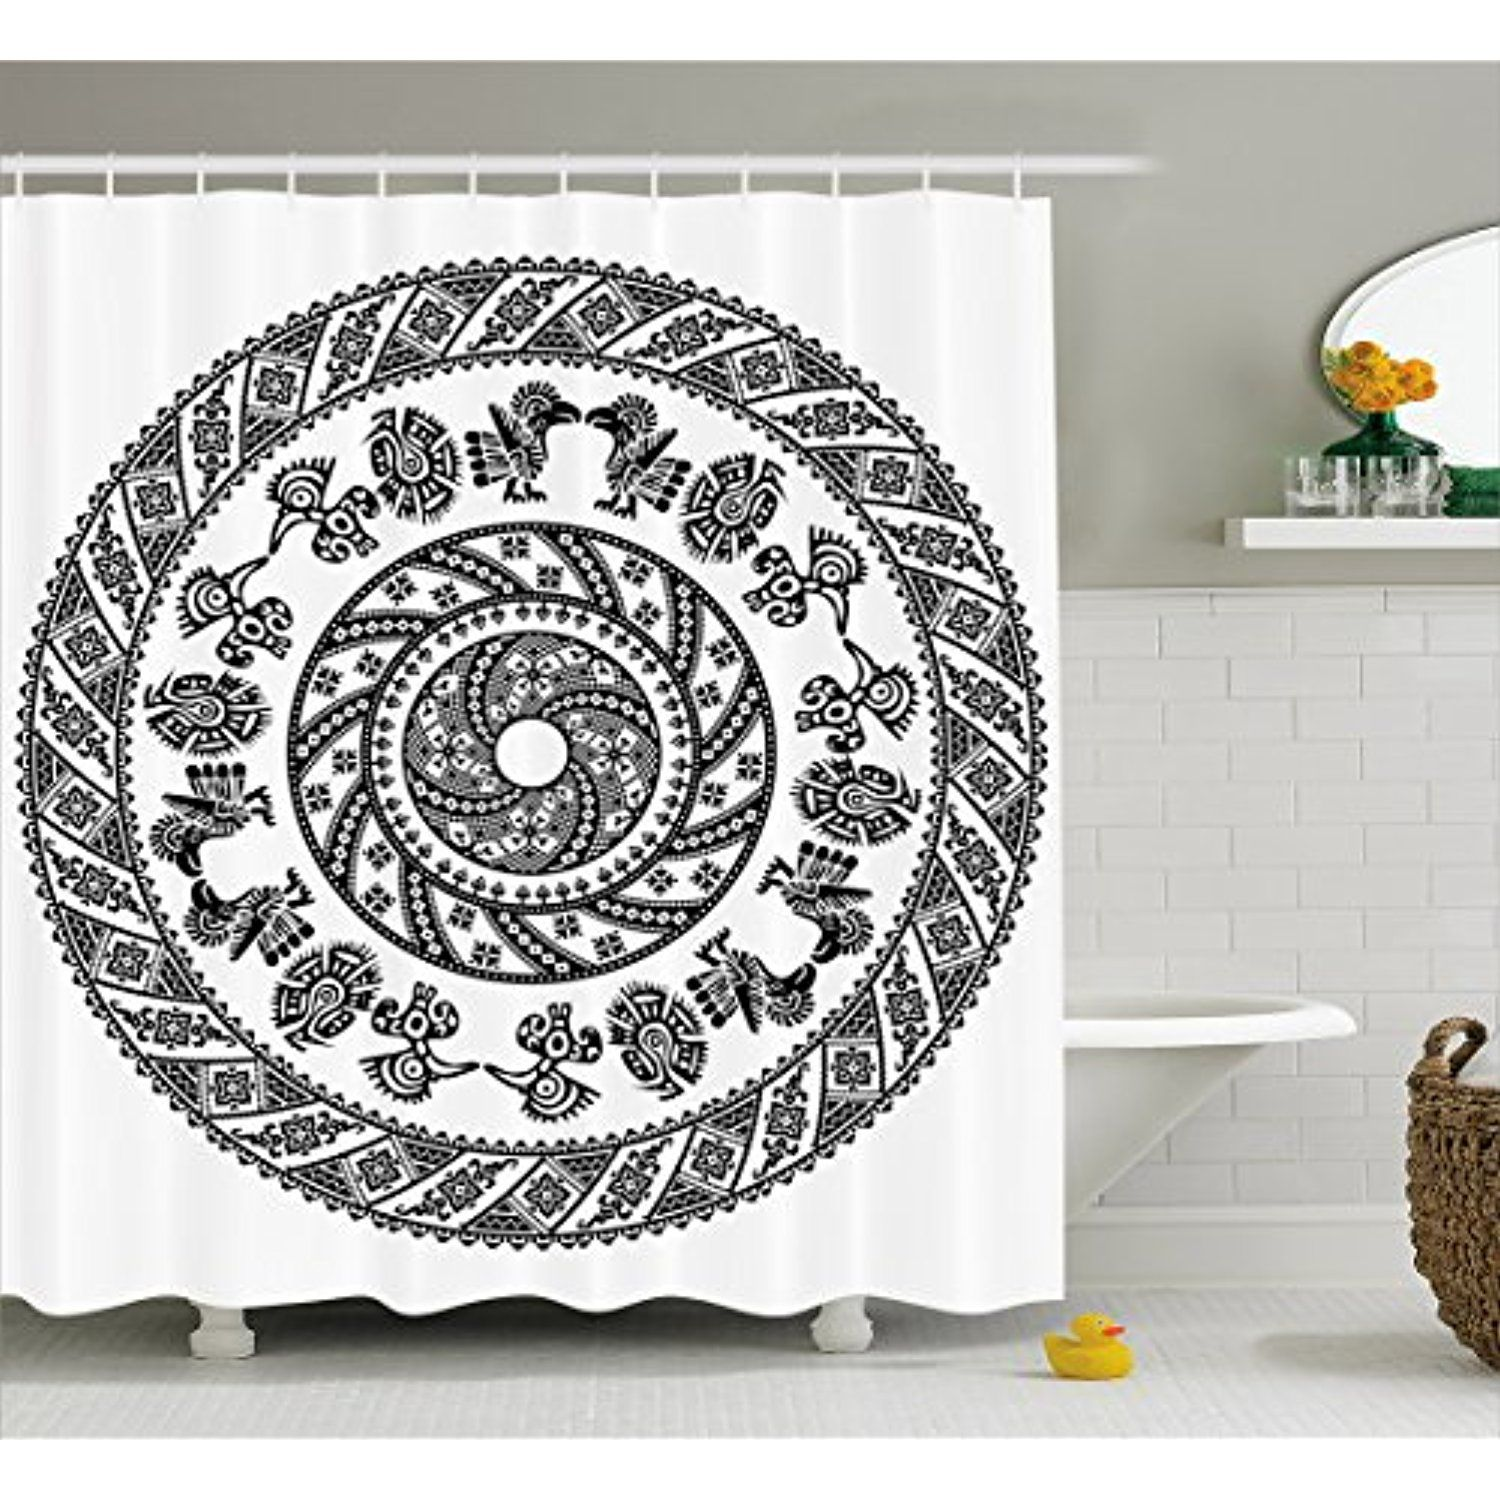 Aztec Shower Curtain By Lunarable Spiral Design With Circles And